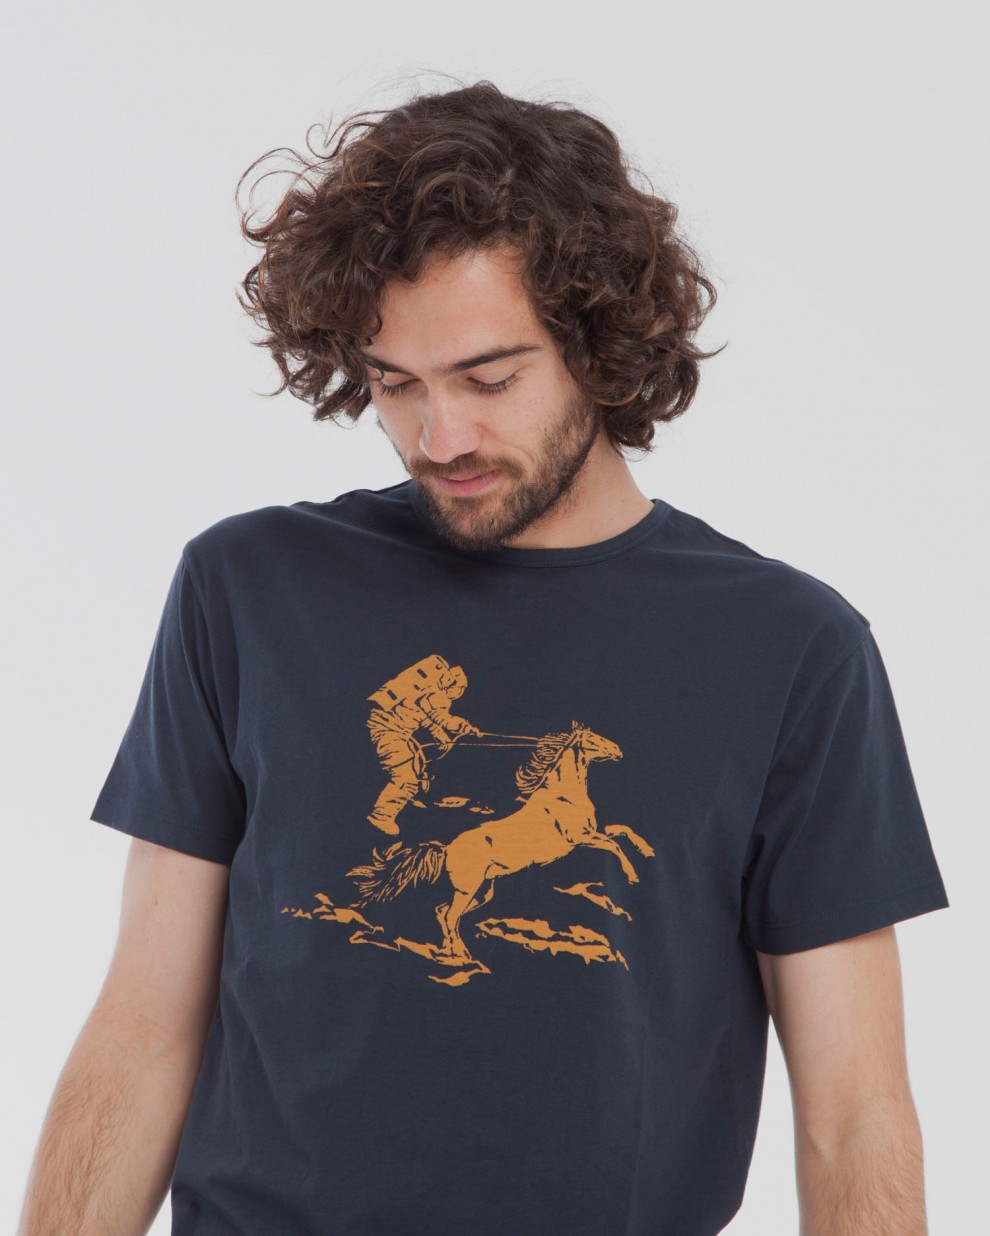 Space Rider T-Shirt